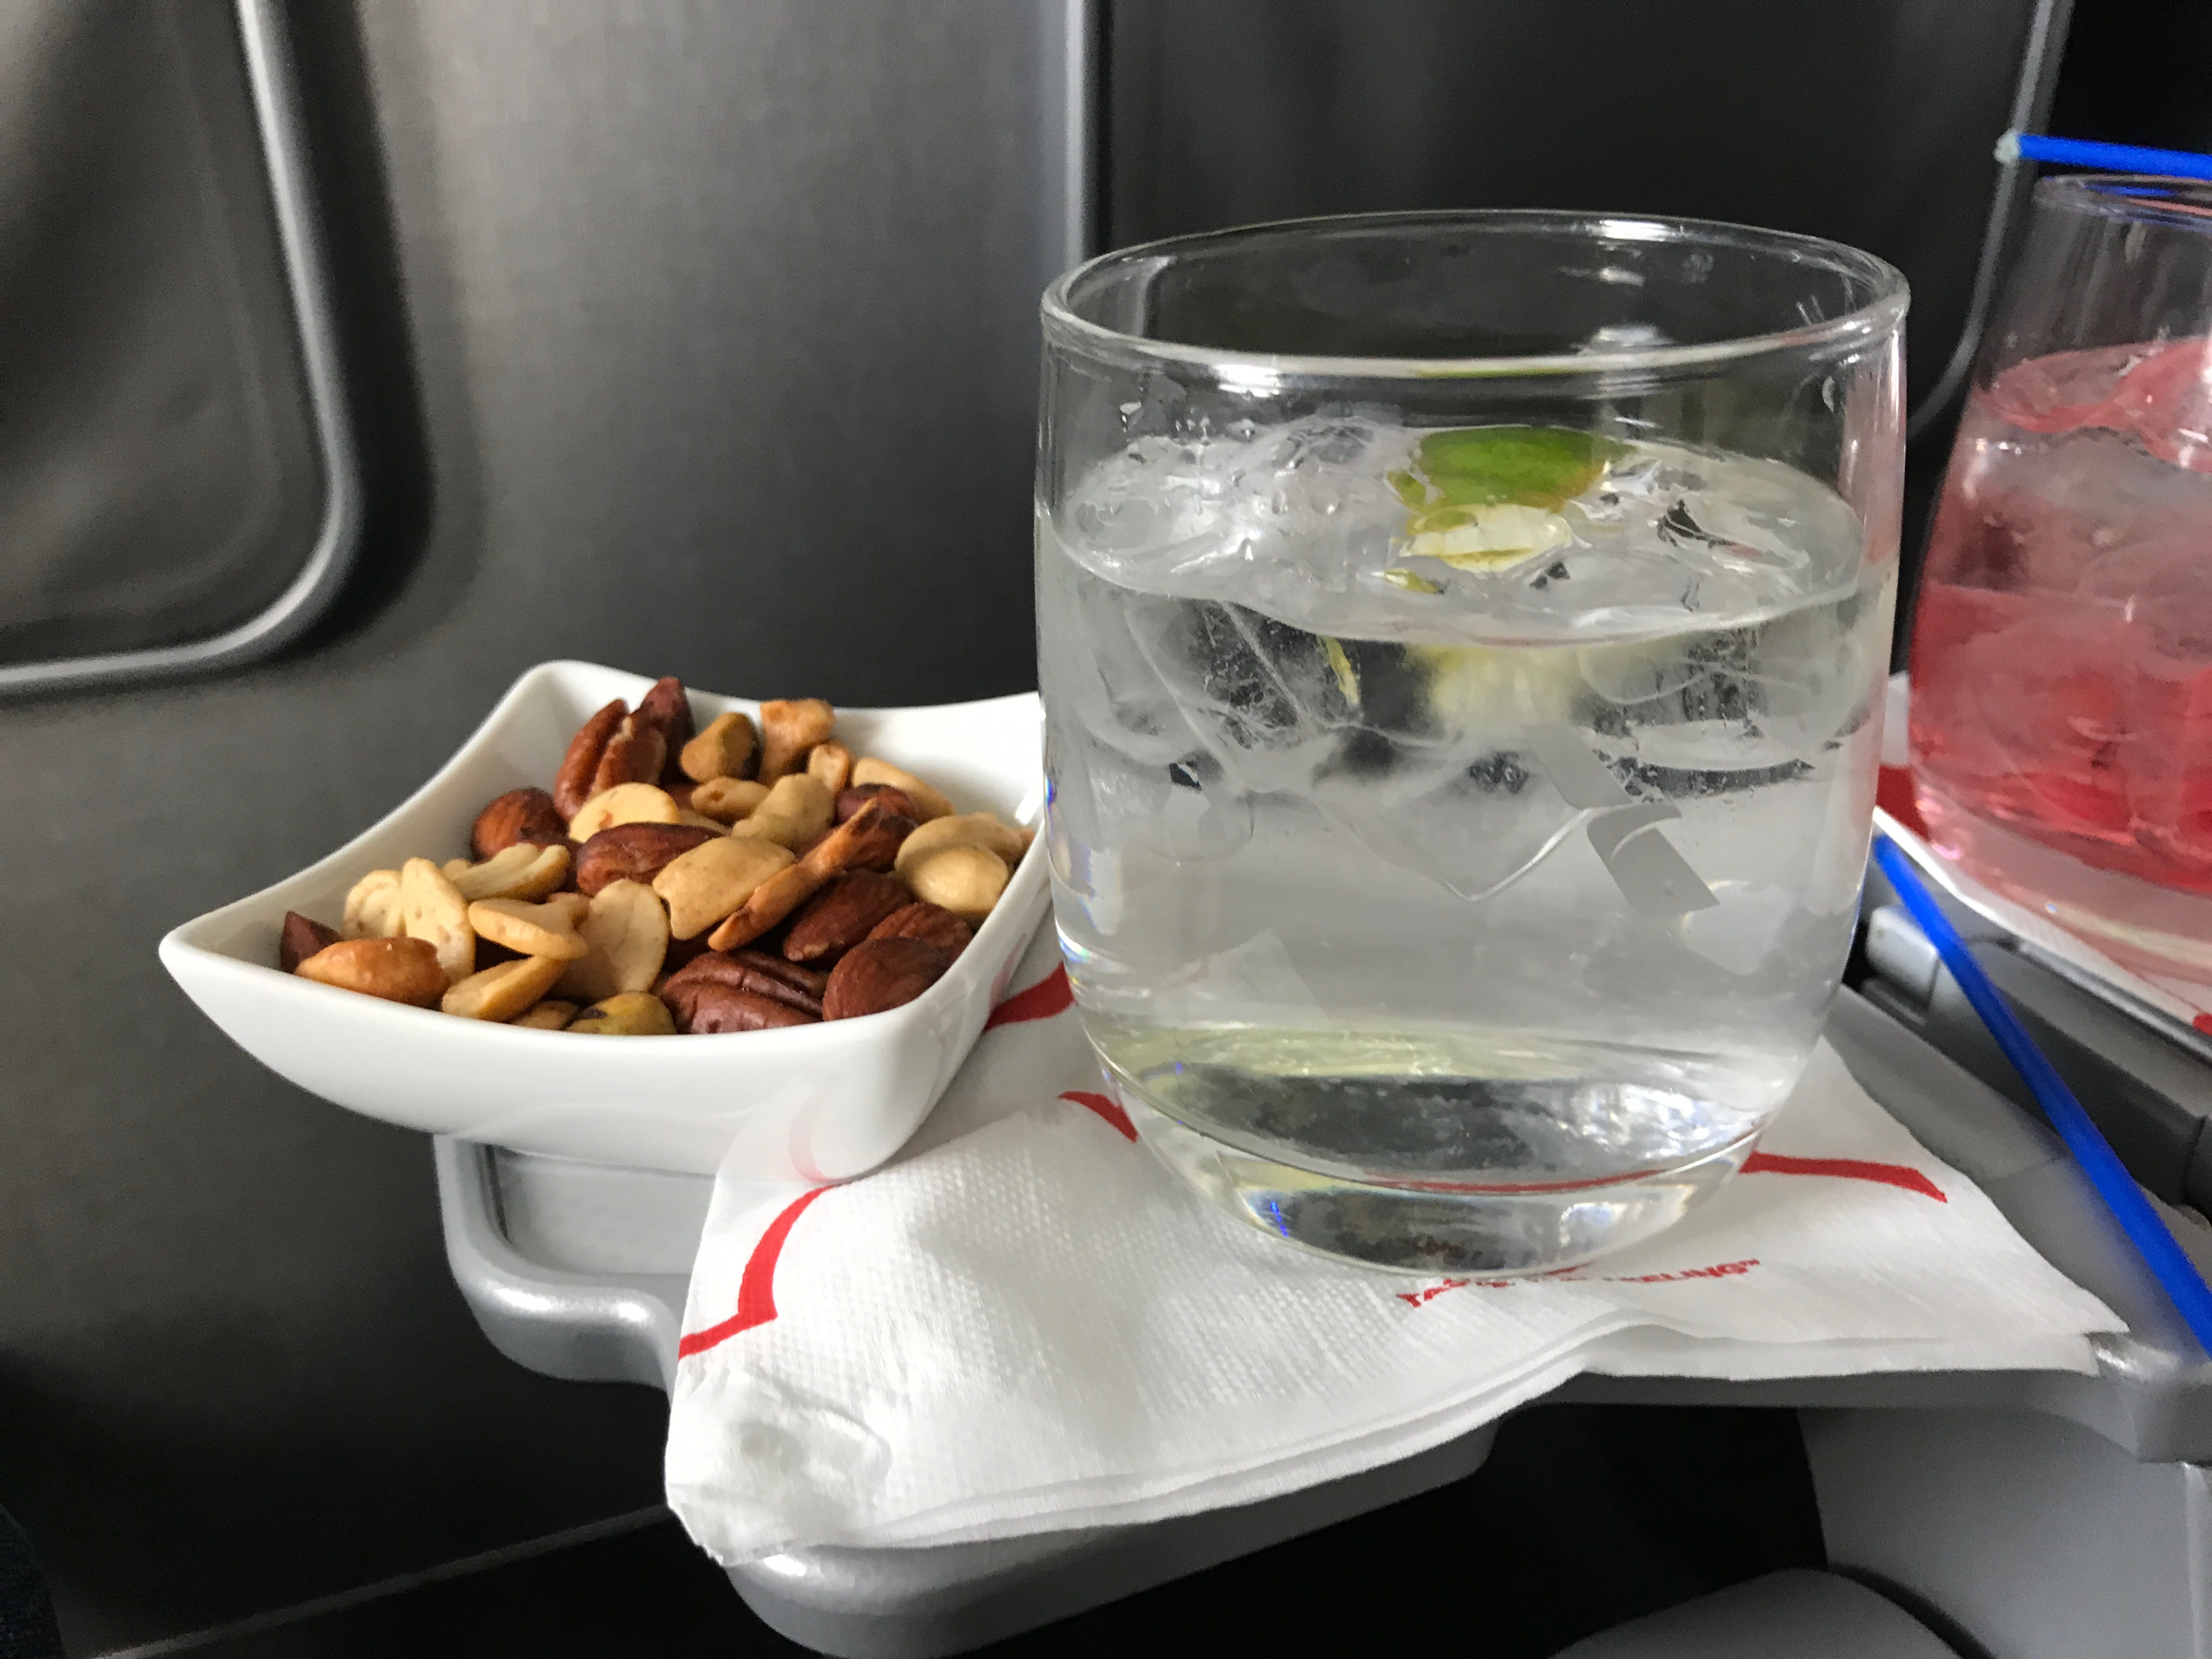 American Airlines Gin and Tonic with warmed nuts